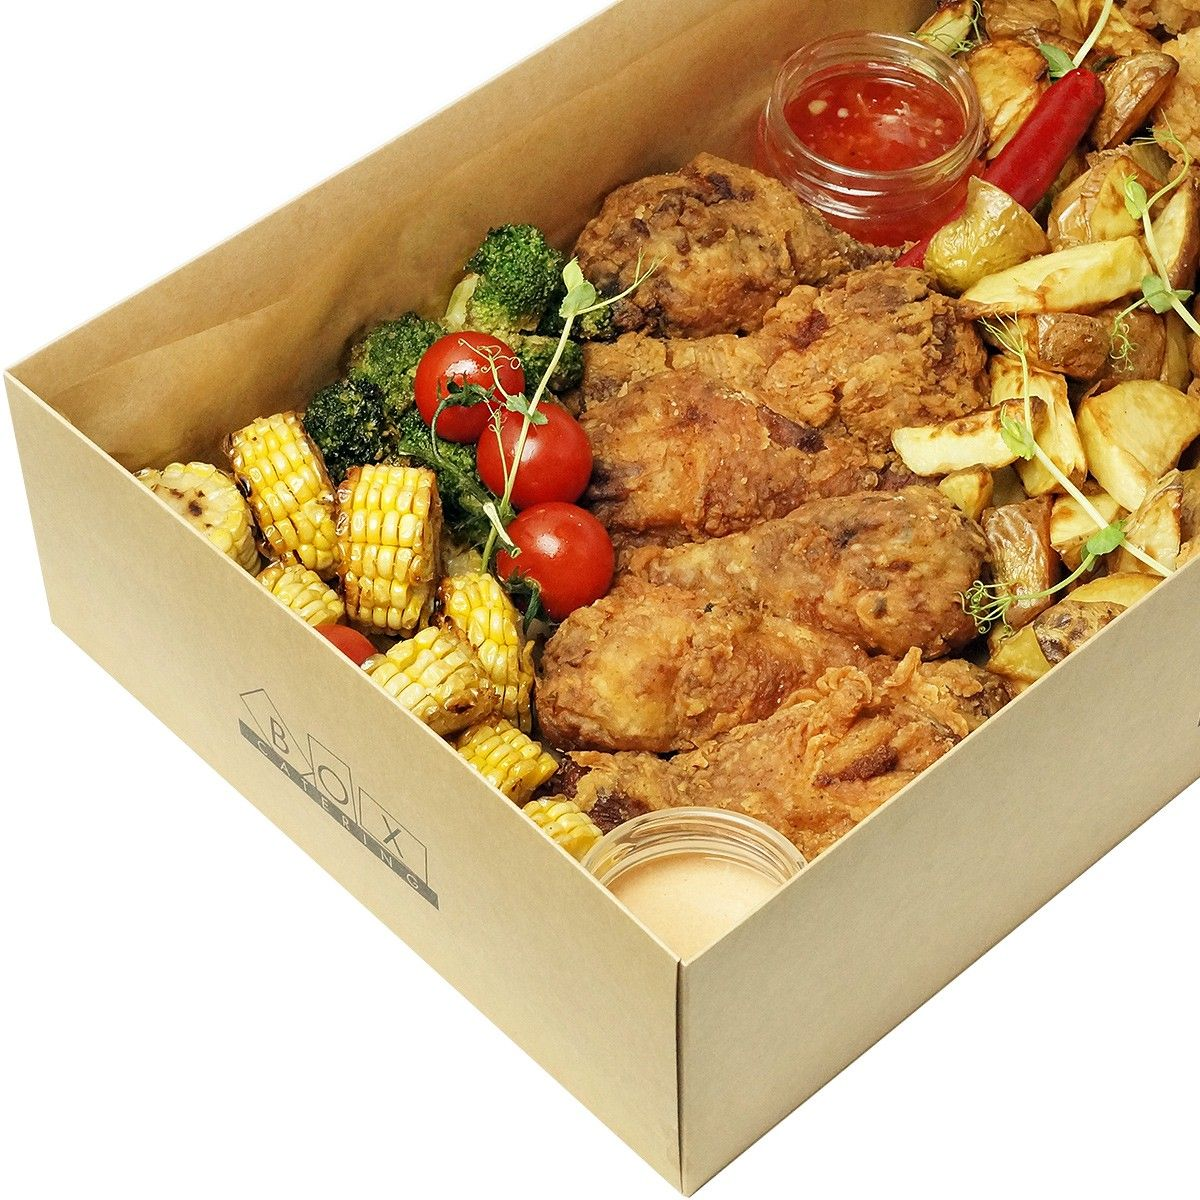 Fried chicken big box фото 2